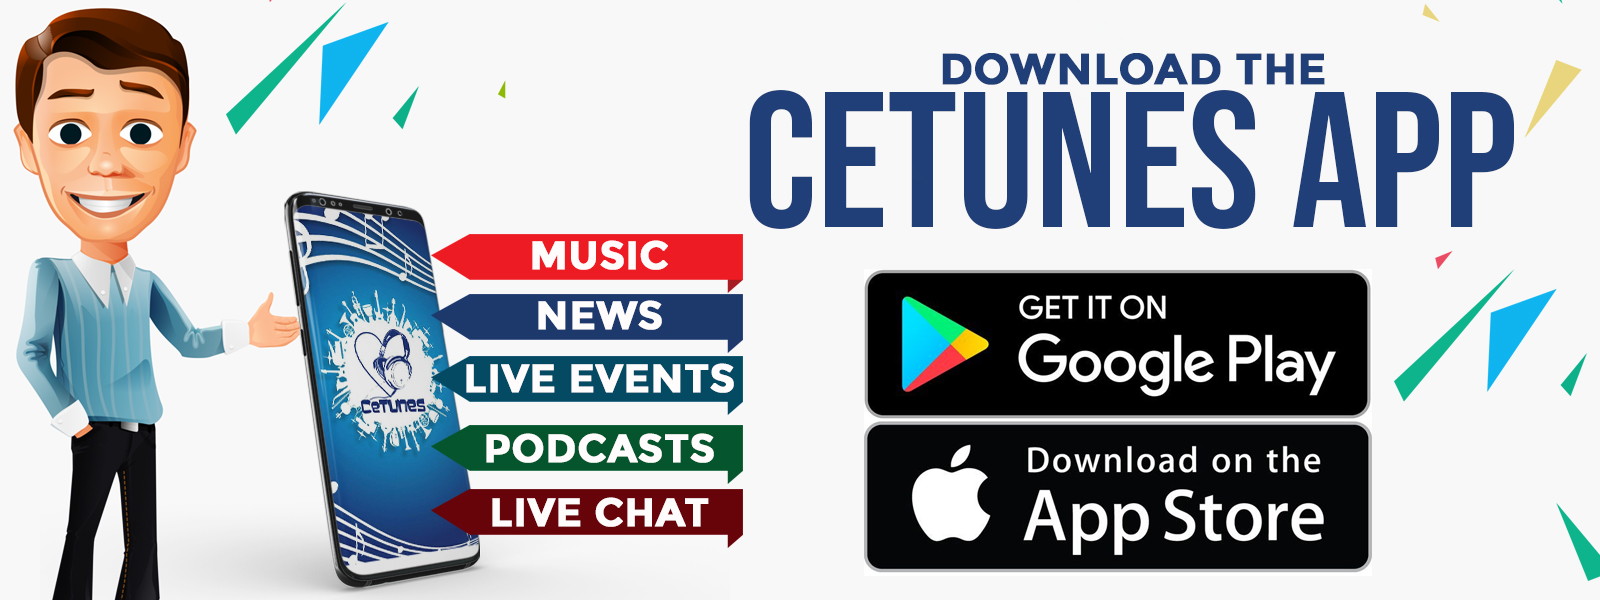 Download the Cetunes Mobile App